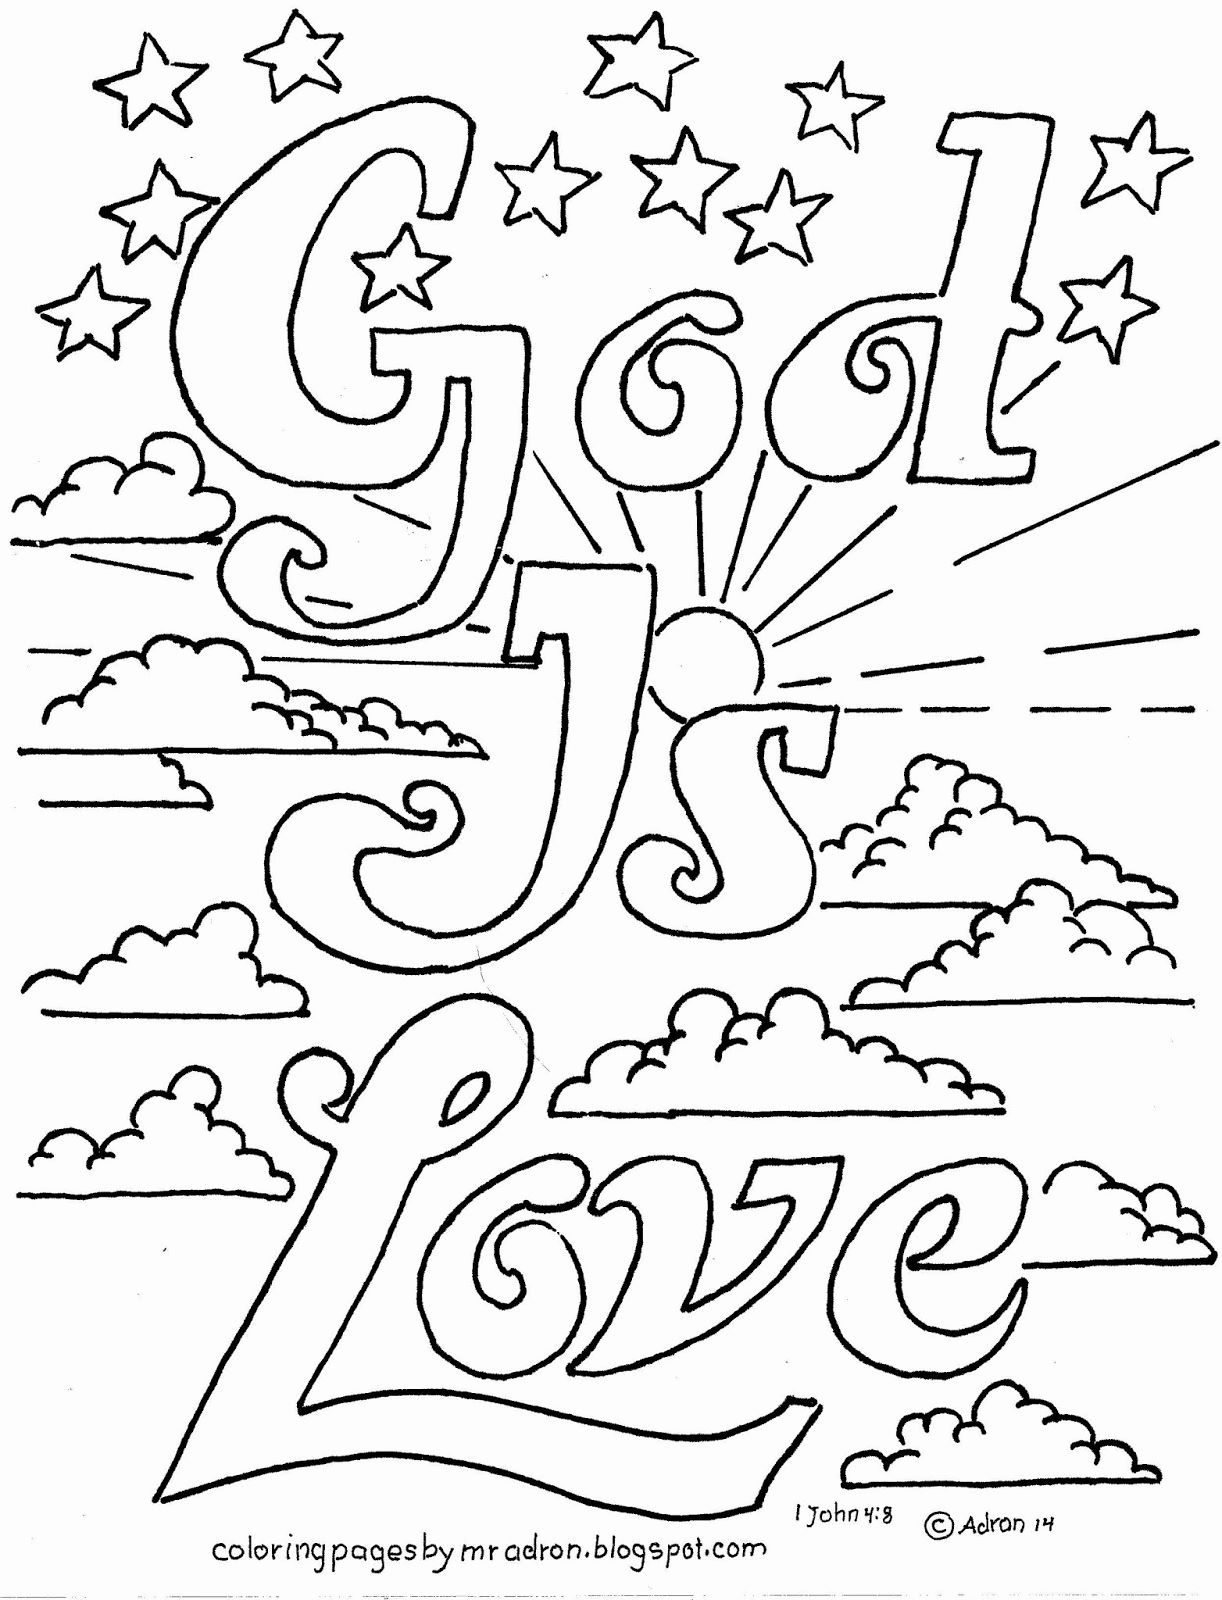 Fall Coloring Pages For Kids Church In 2020 Love Coloring Pages Free Kids Coloring Pages Sunday School Coloring Pages